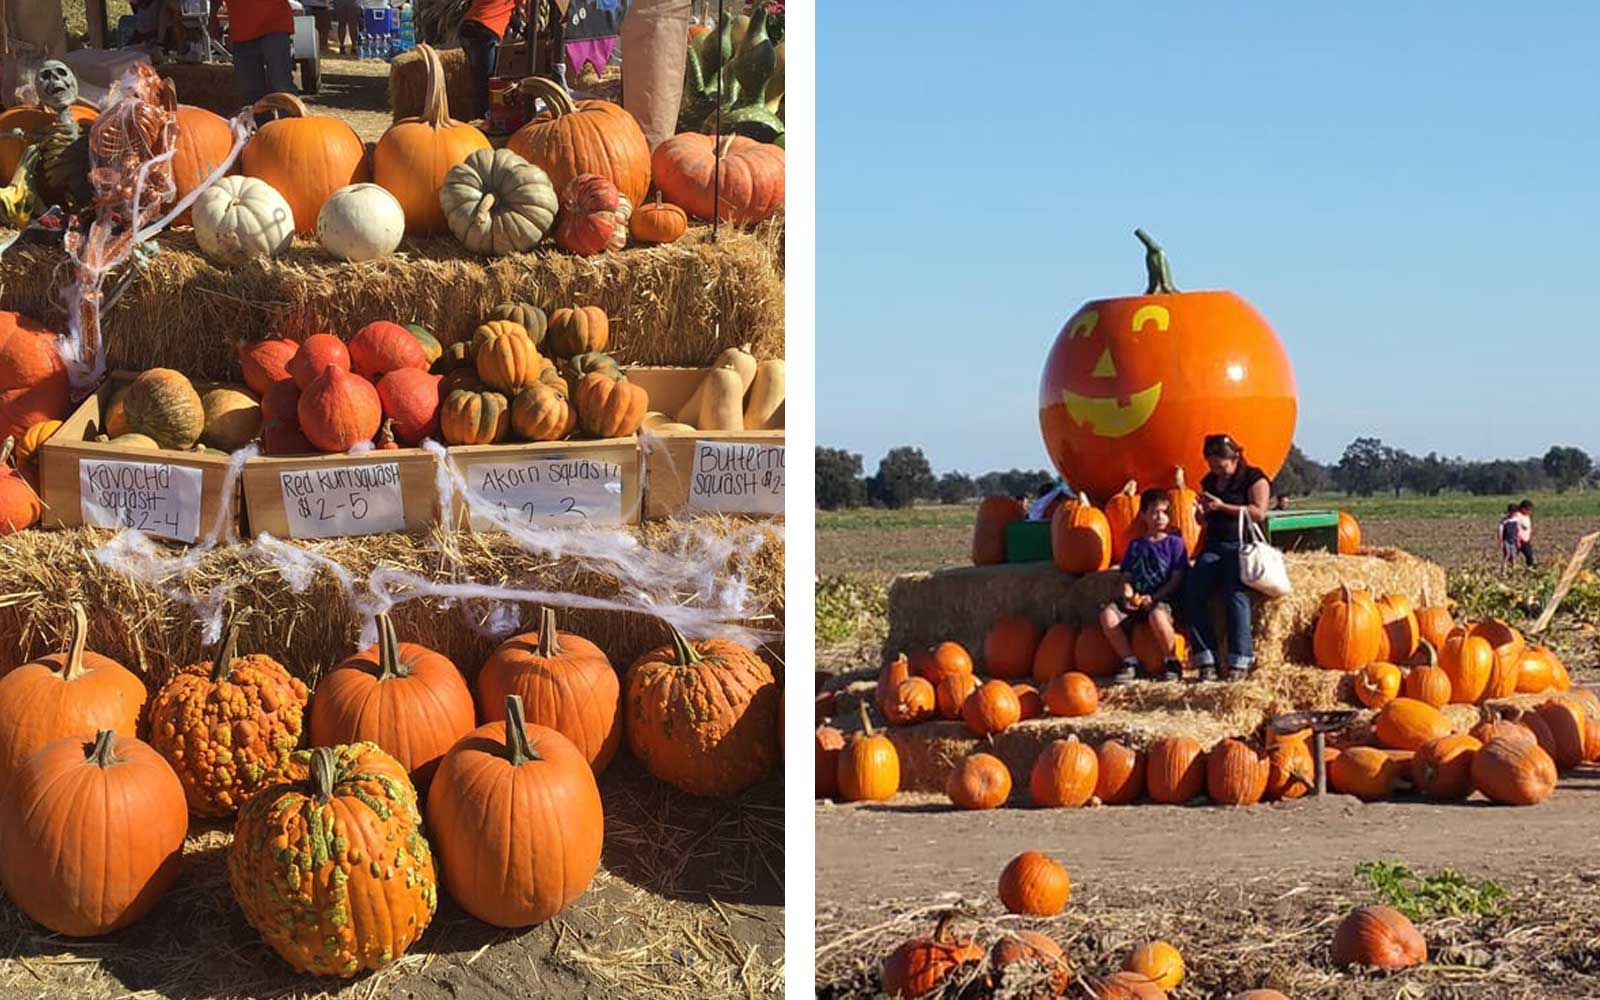 2. Uncle Ray's Pumpkin Patch